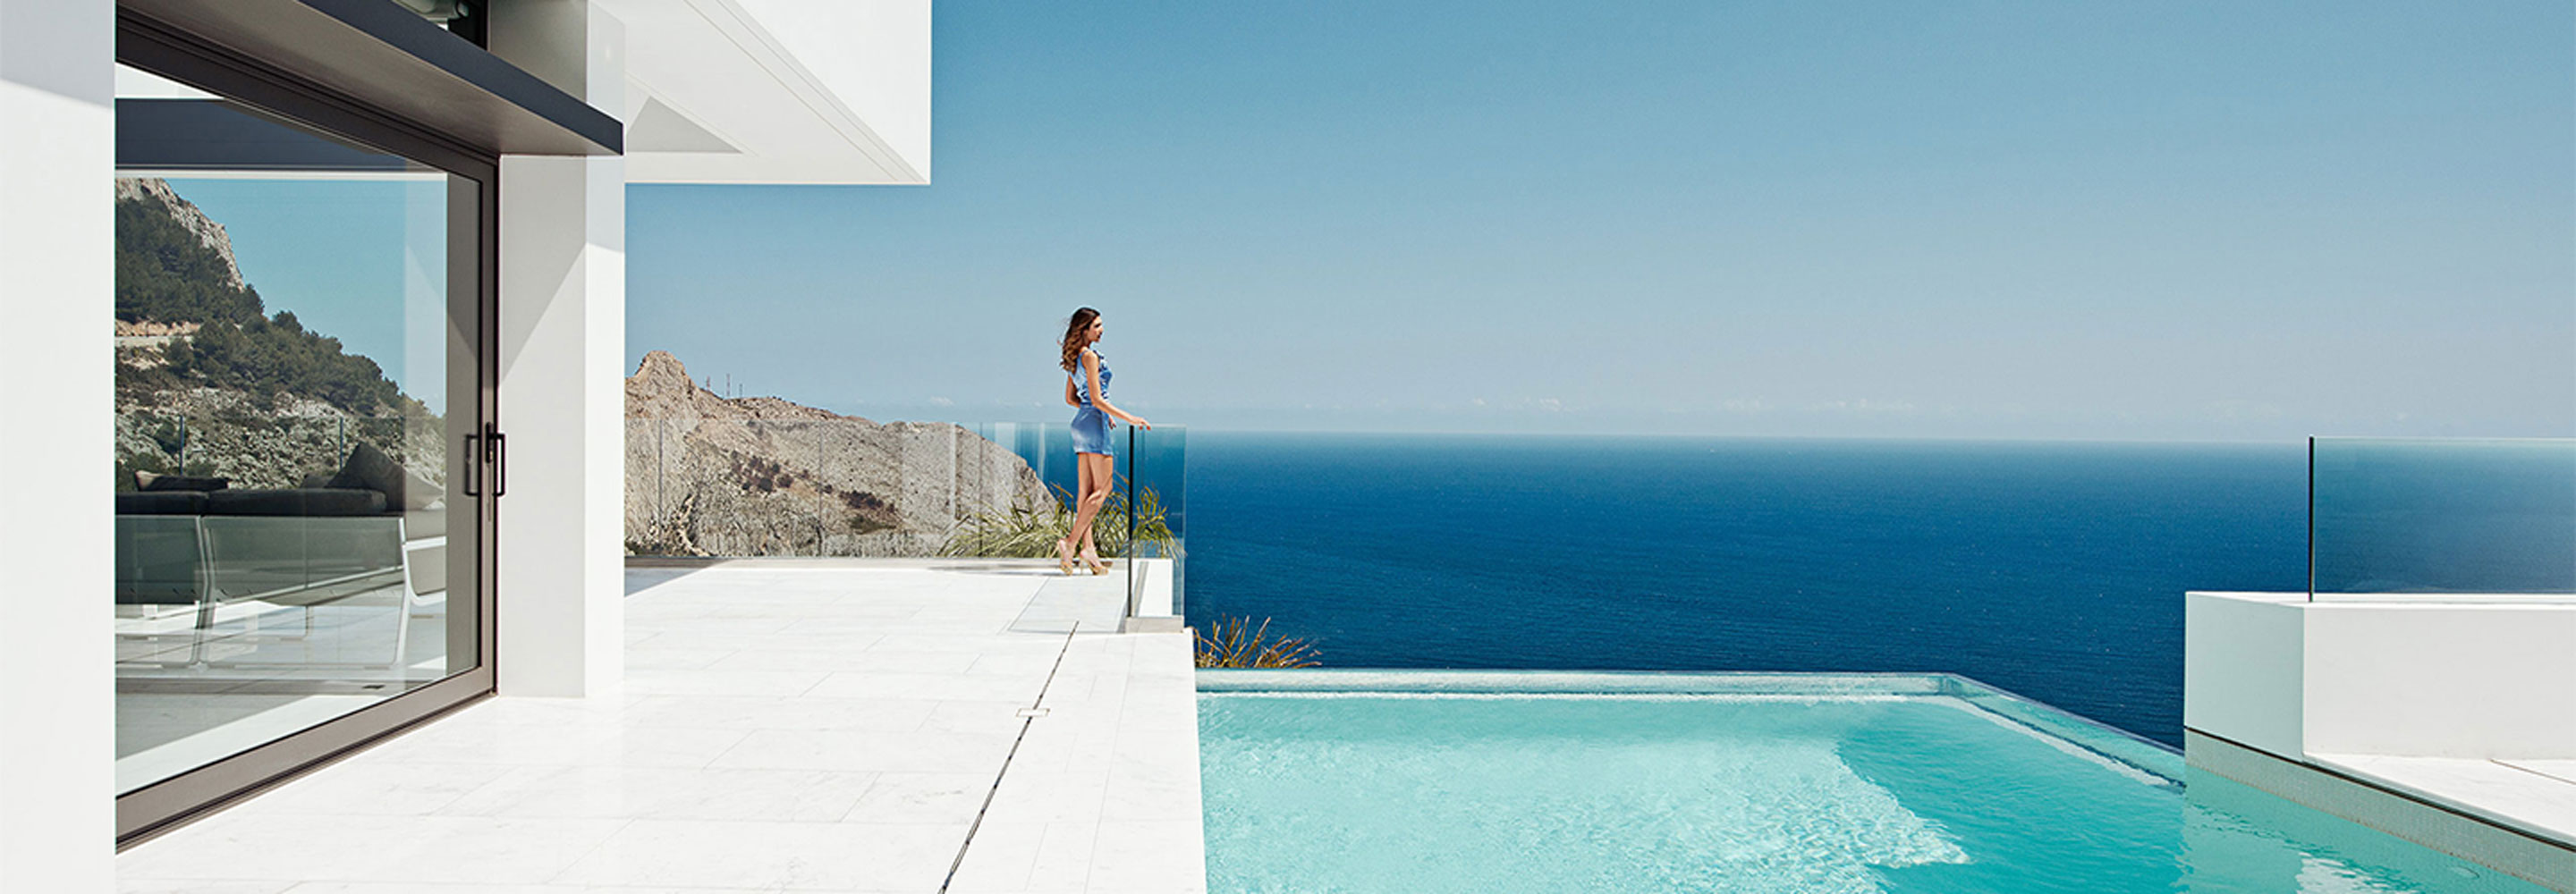 Seaside Villa Frameless Glass Railing with transparent swimmingpool